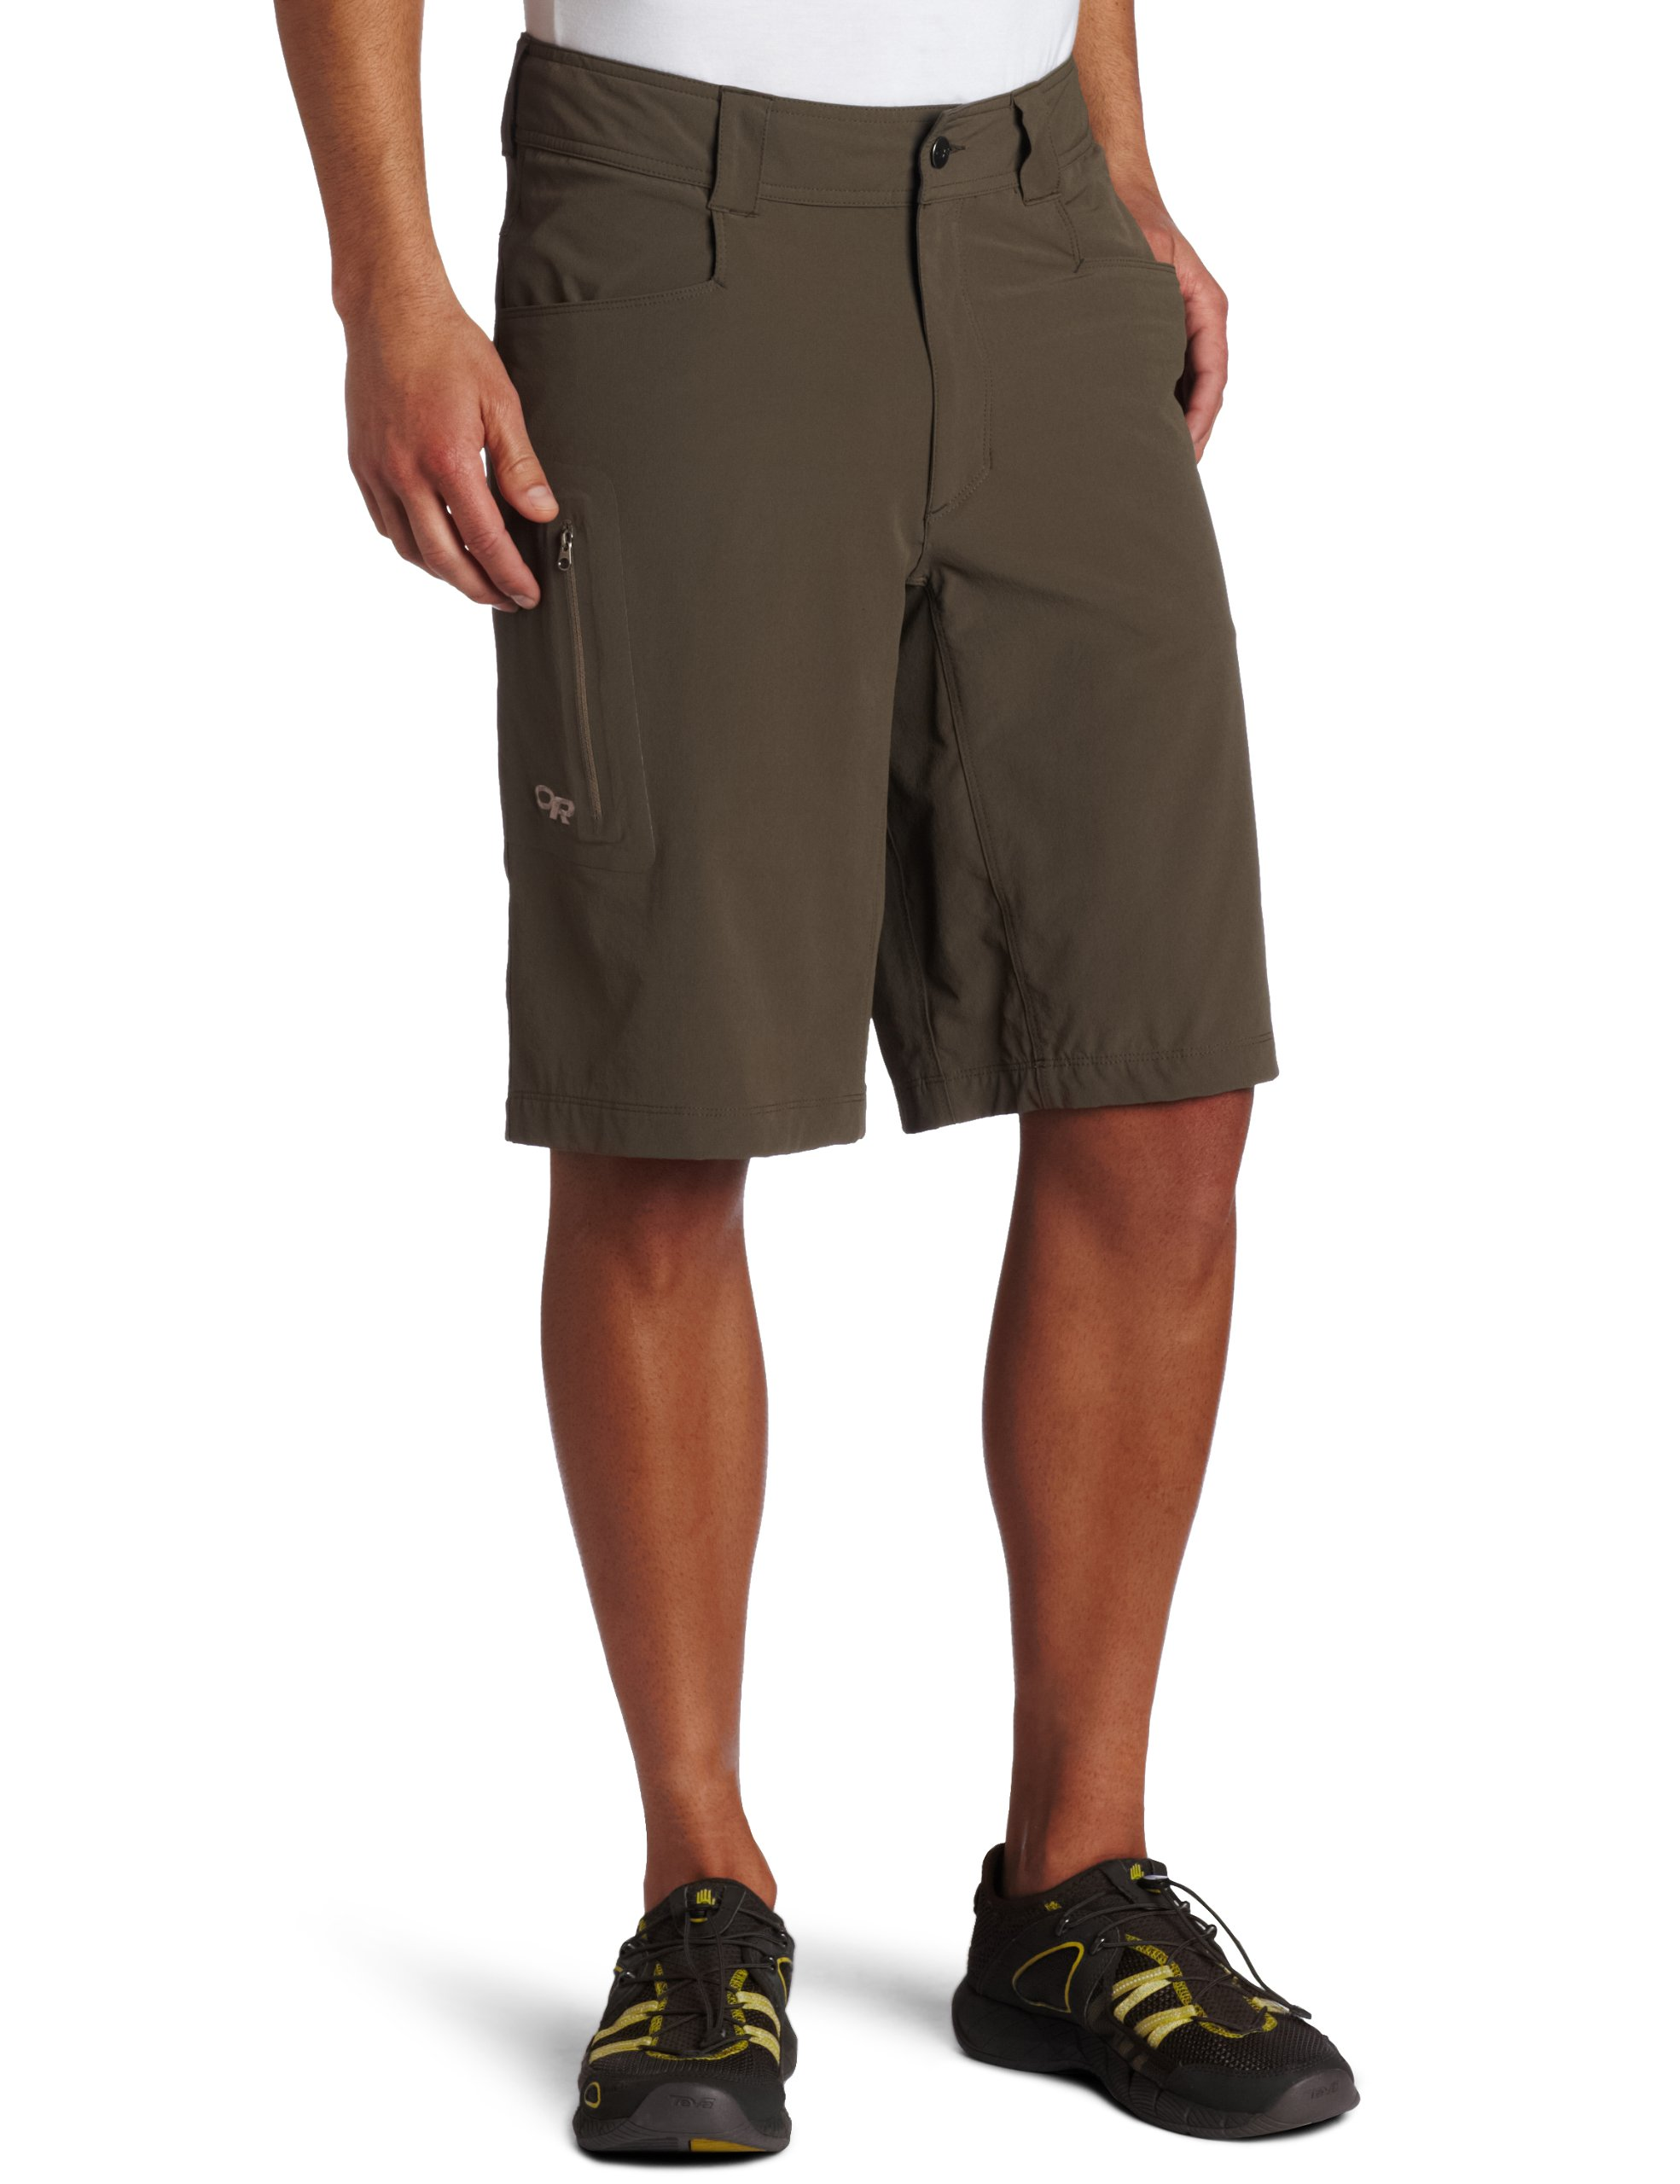 Outdoor Research Men's Ferrosi 12'' Shorts, Mushroom, 30 by Outdoor Research